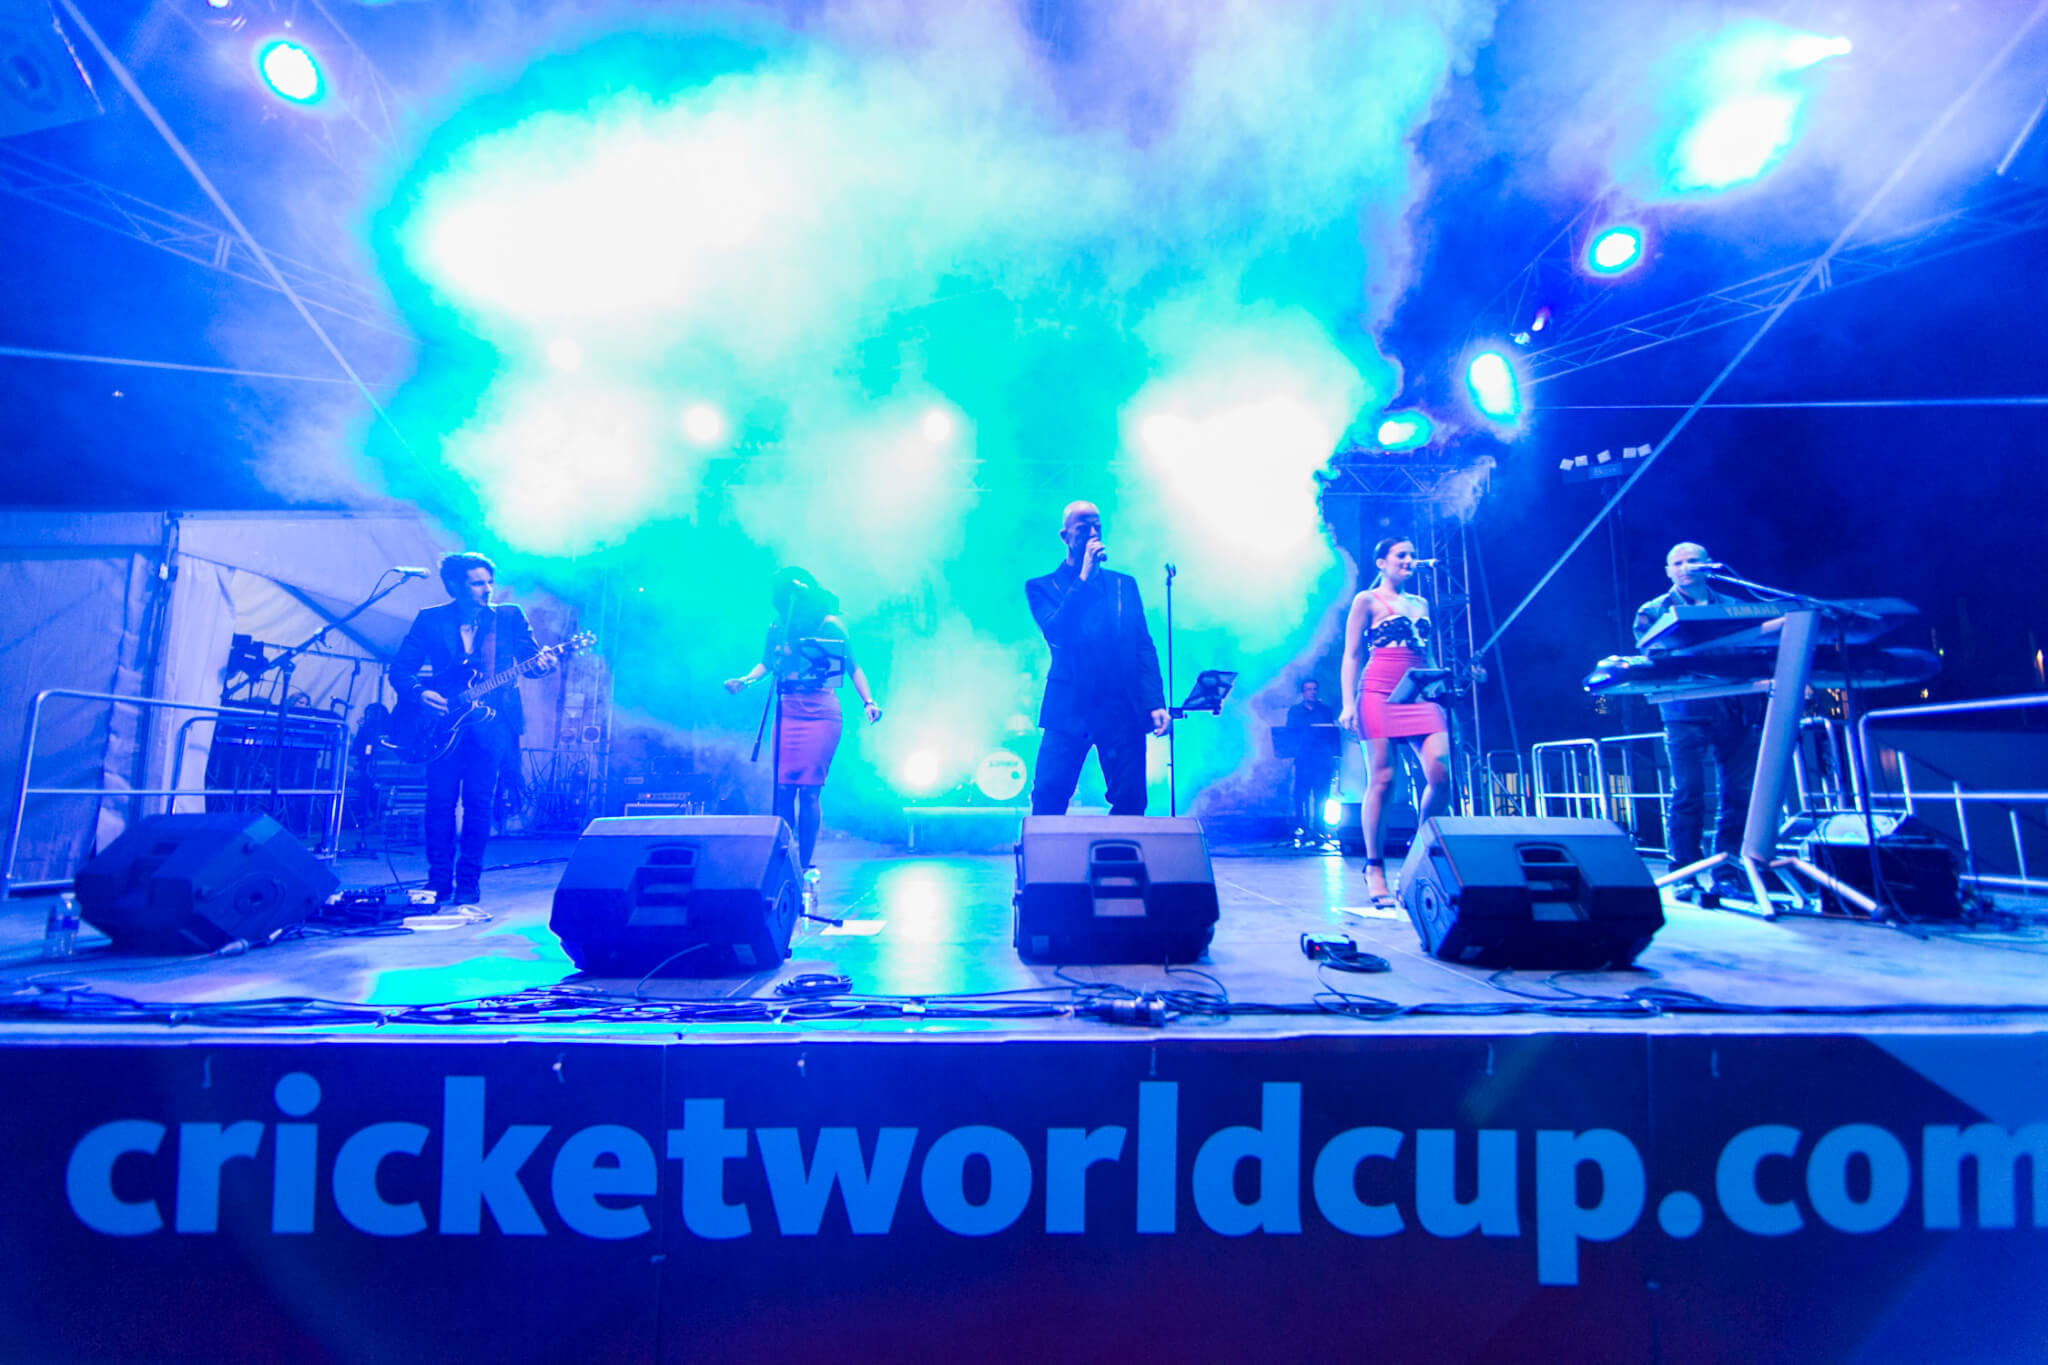 Chunky Jam world cup cricket-10 corporate cover band-wedding band-party band-melbourne